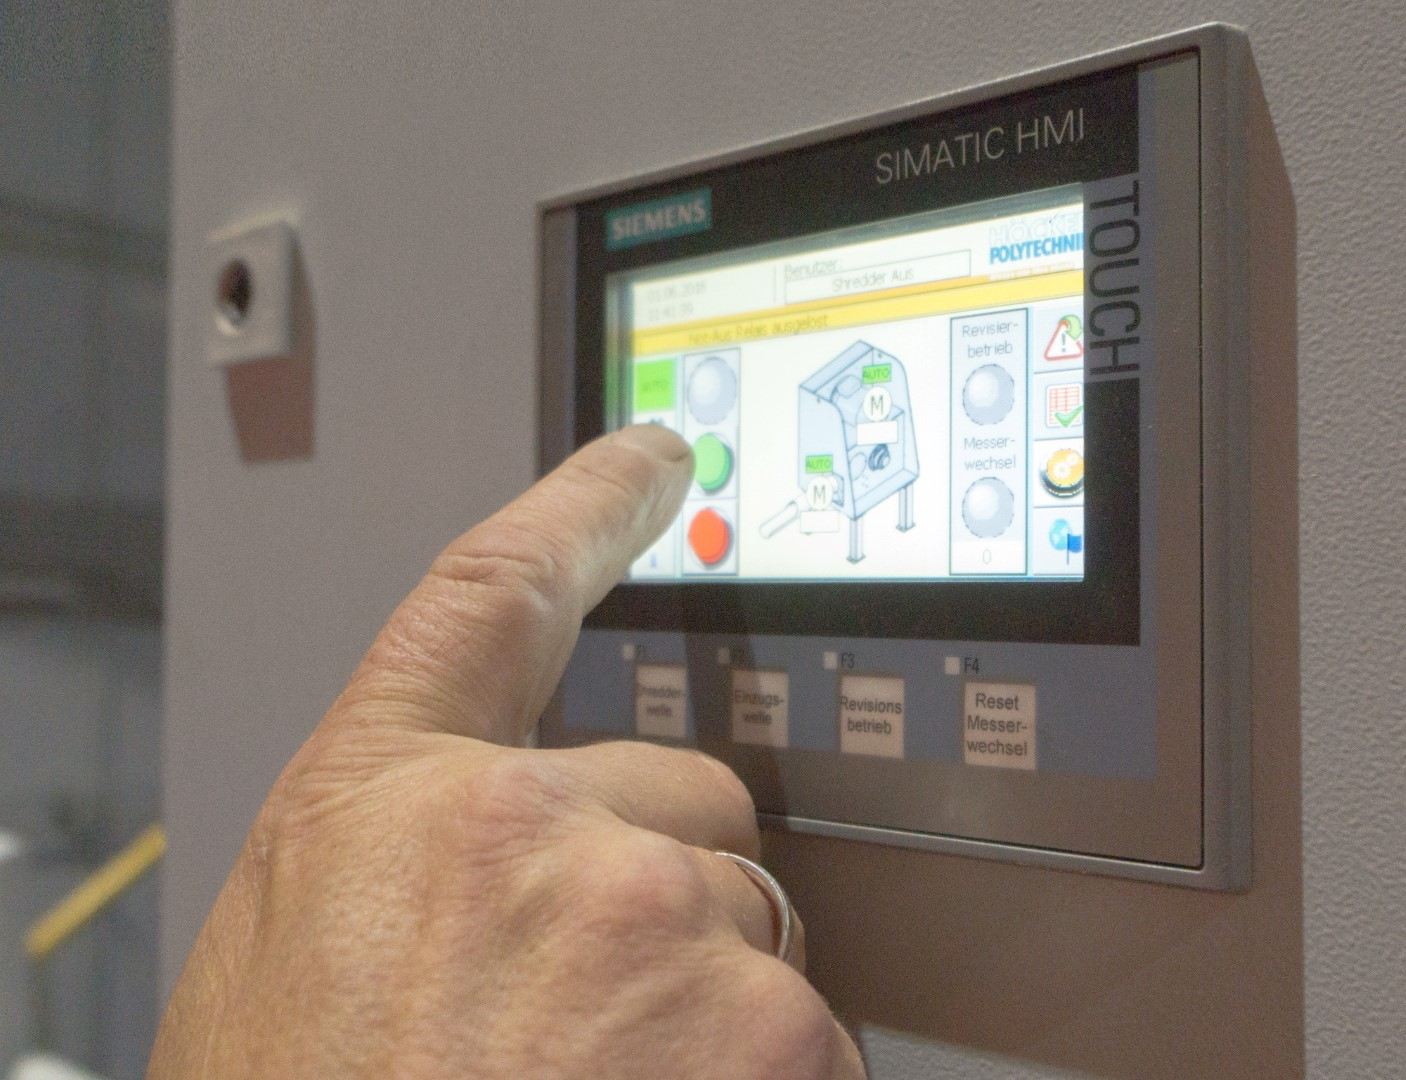 HMI User interface with finger touching the lit up screen